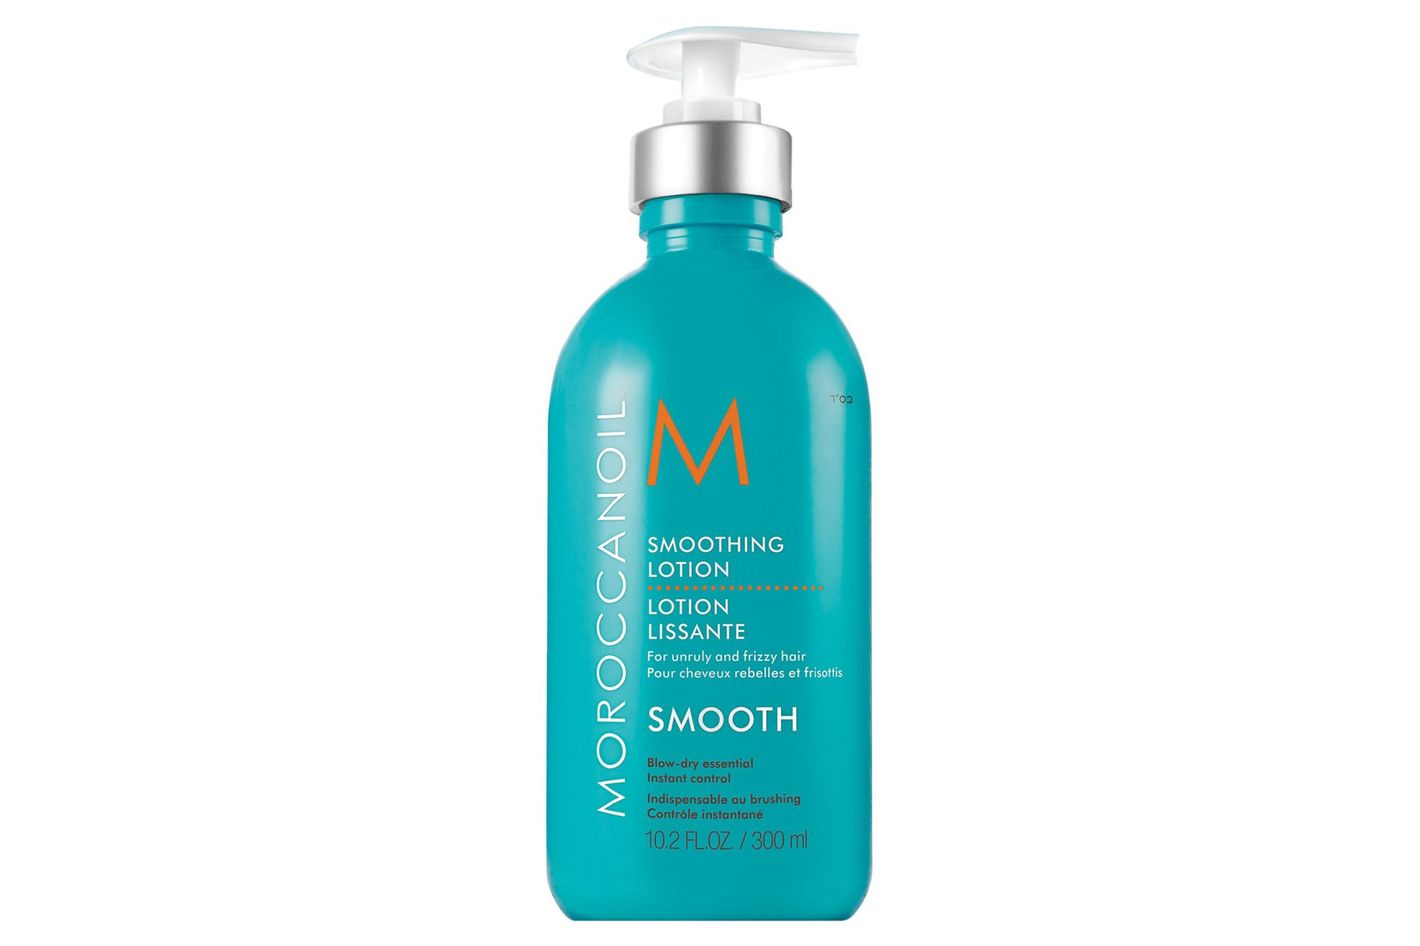 Moroccan Oil Smooth Smoothing Lotion